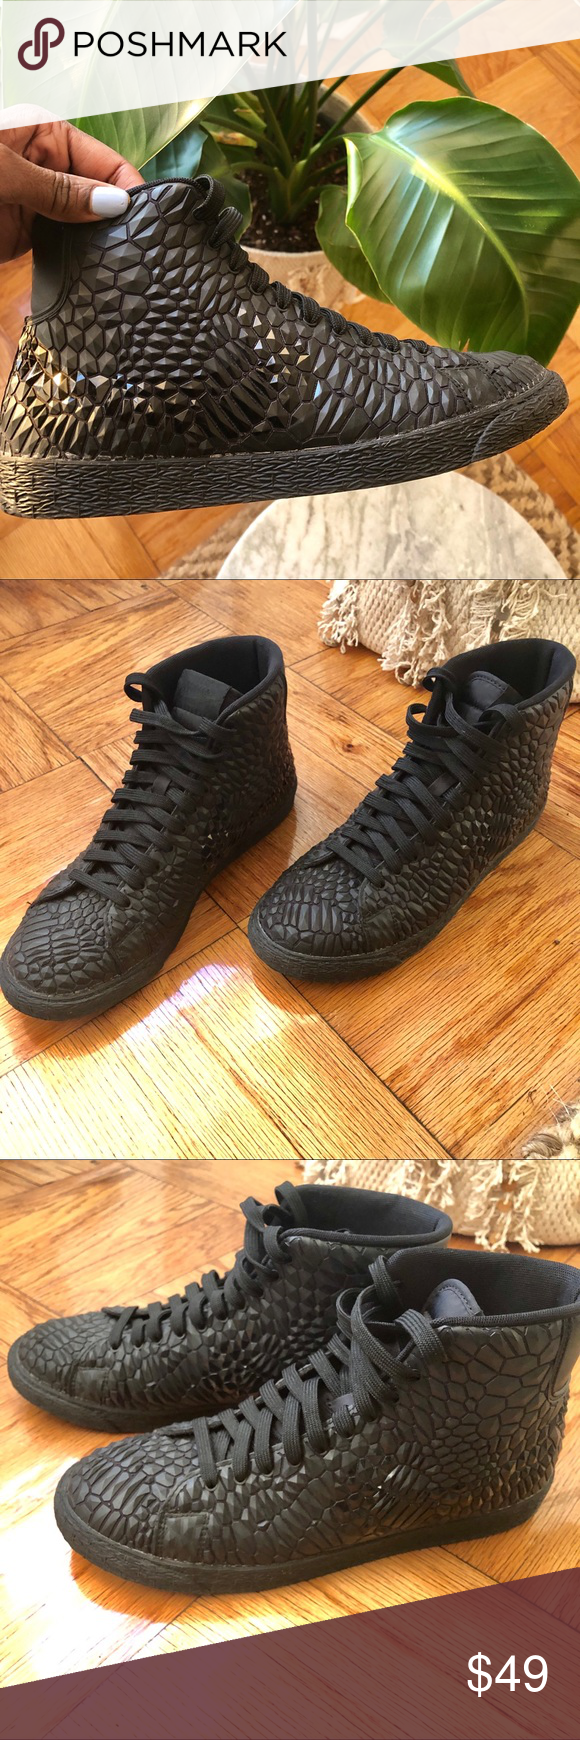 d5ce4d924cd8 Nike Women s Blazer Mid DMB Black Diamond A modern edgy take on the classic Nike  blazer